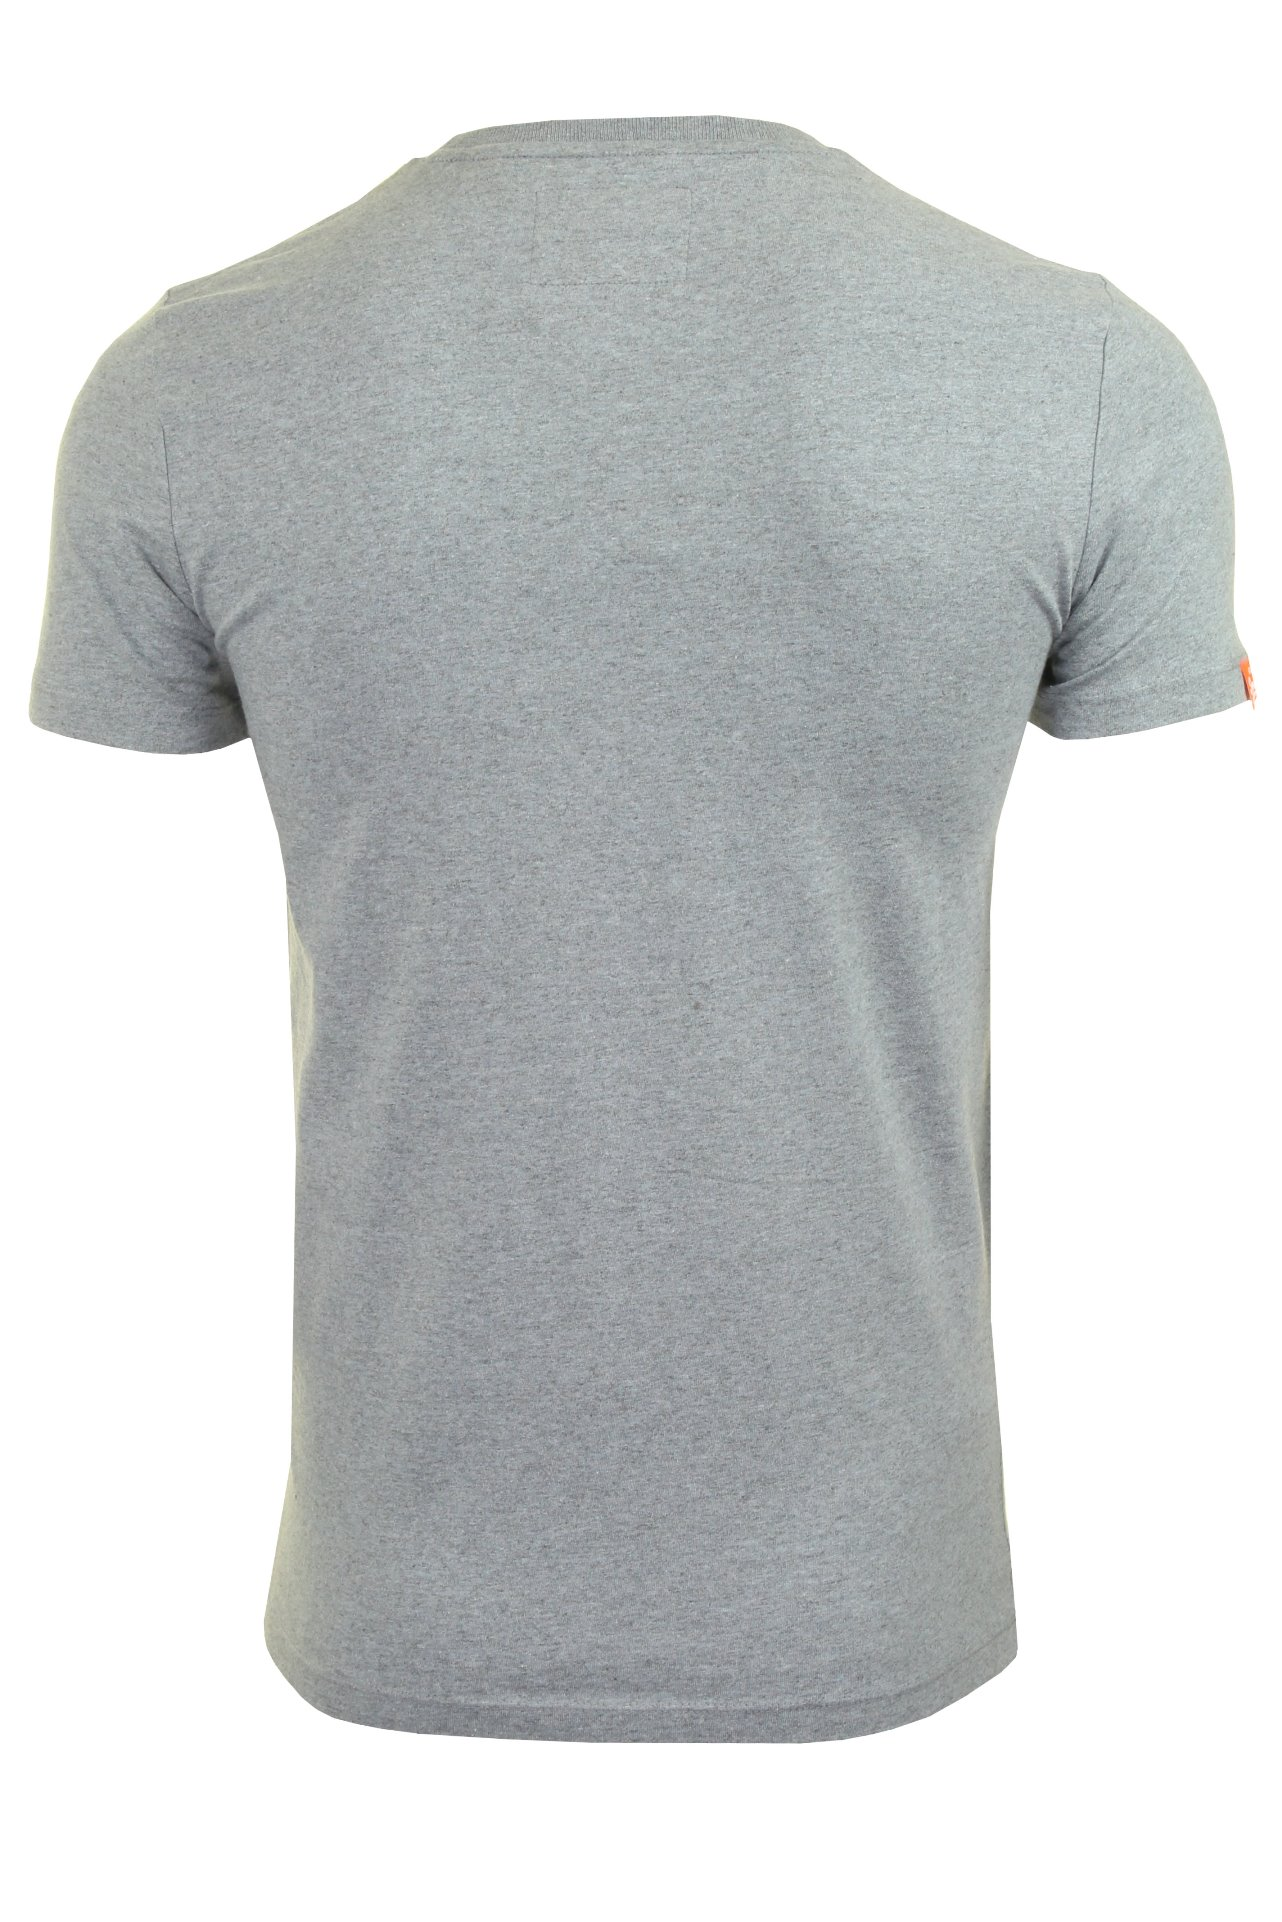 Superdry-Mens-039-Vintage-Embroidery-039-Short-Sleeved-T-Shirt thumbnail 5